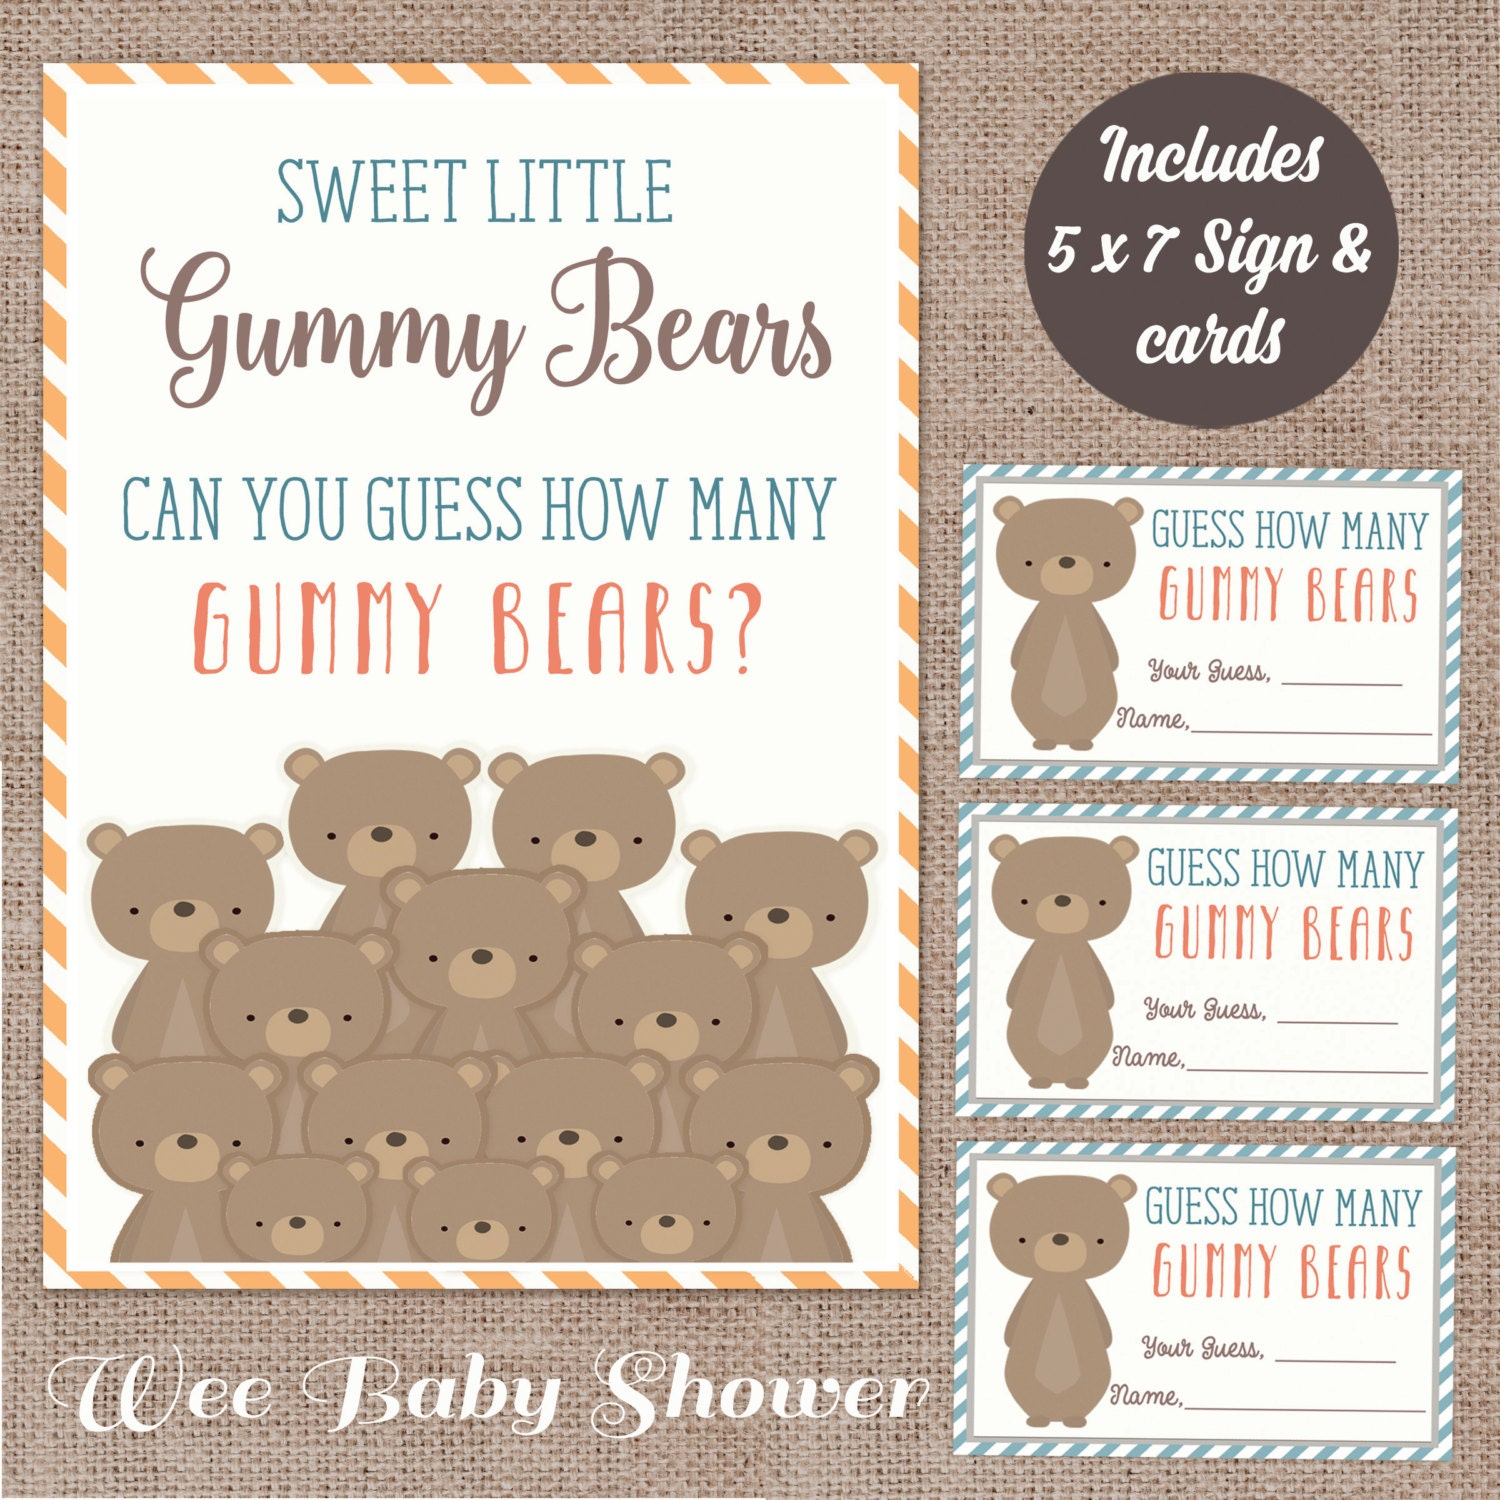 Woodland Baby Shower Gummy Bear guessing game